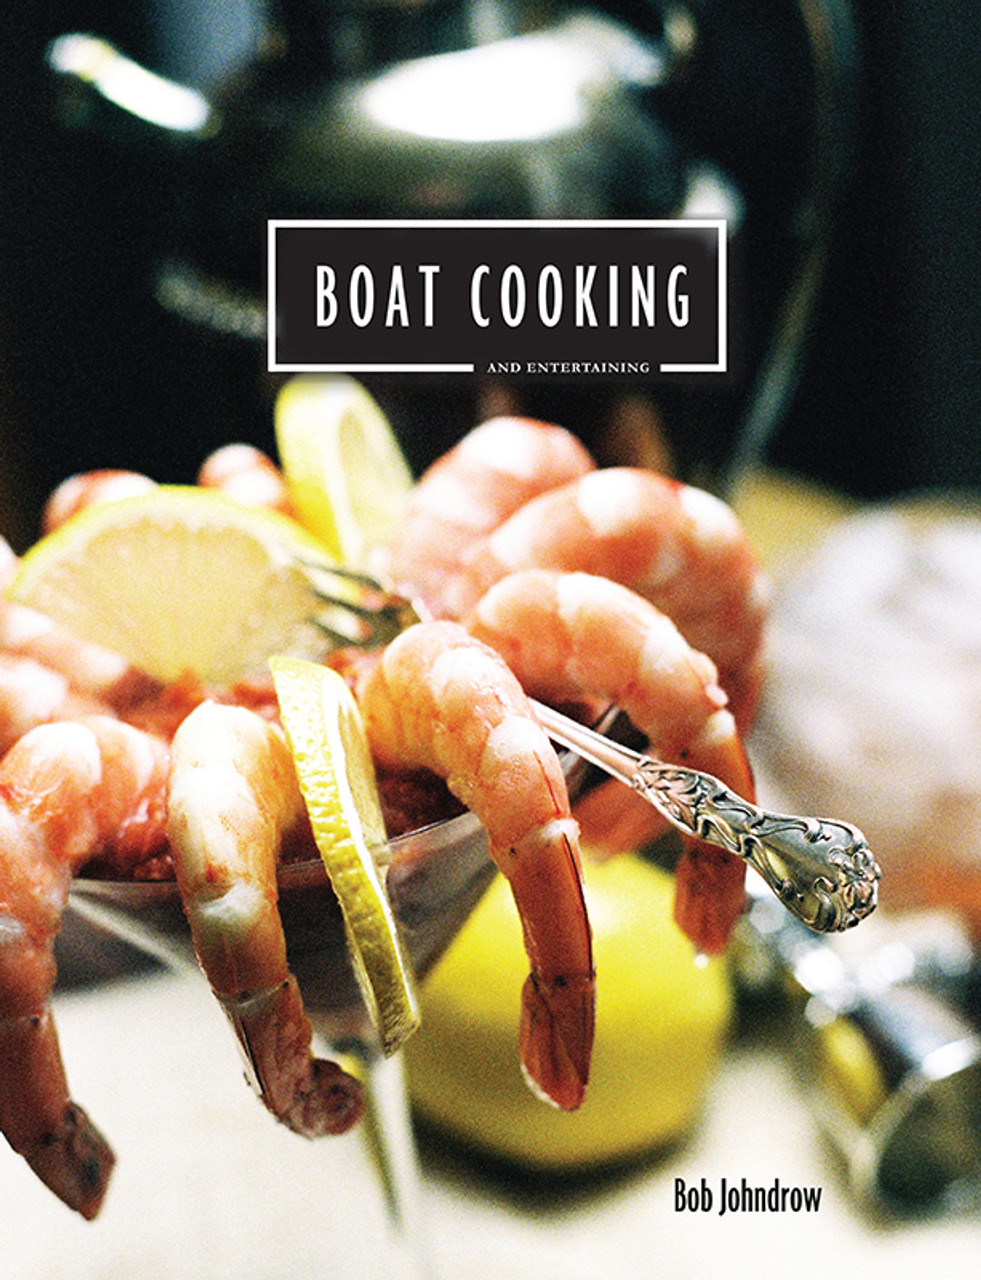 Boat Cooking and Entertaining